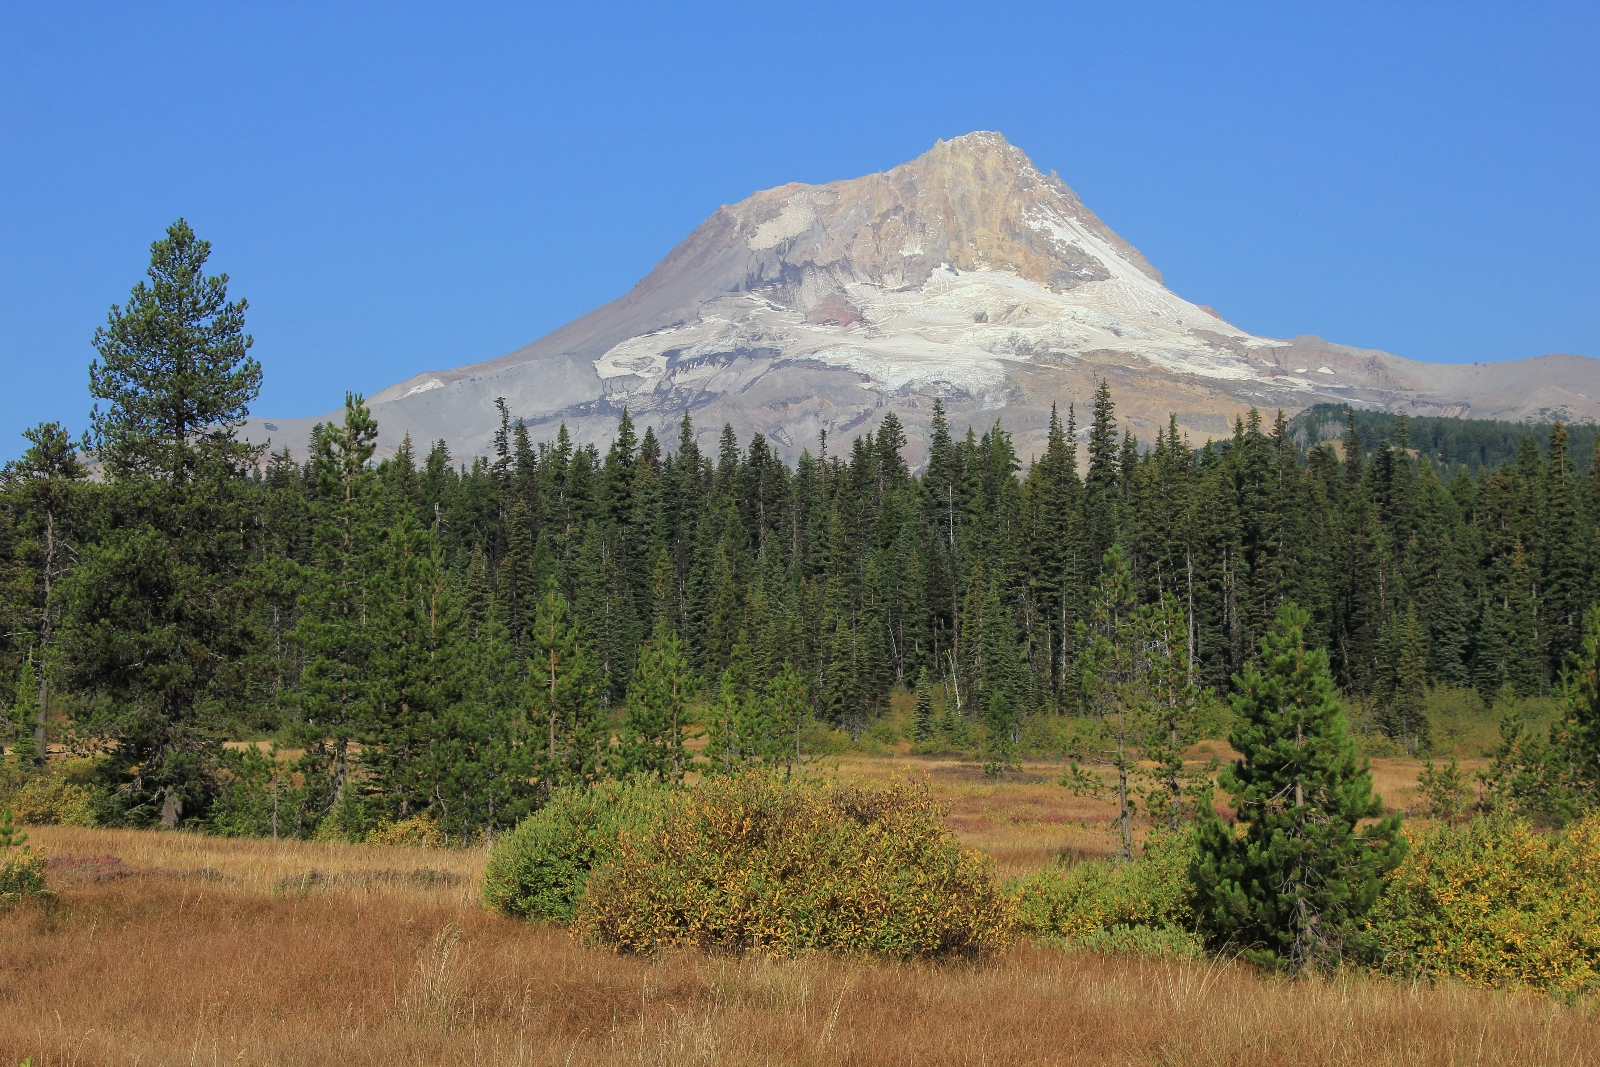 09-12-15 Mt. Hood Elk Meadows Gnarl Ridge (27)